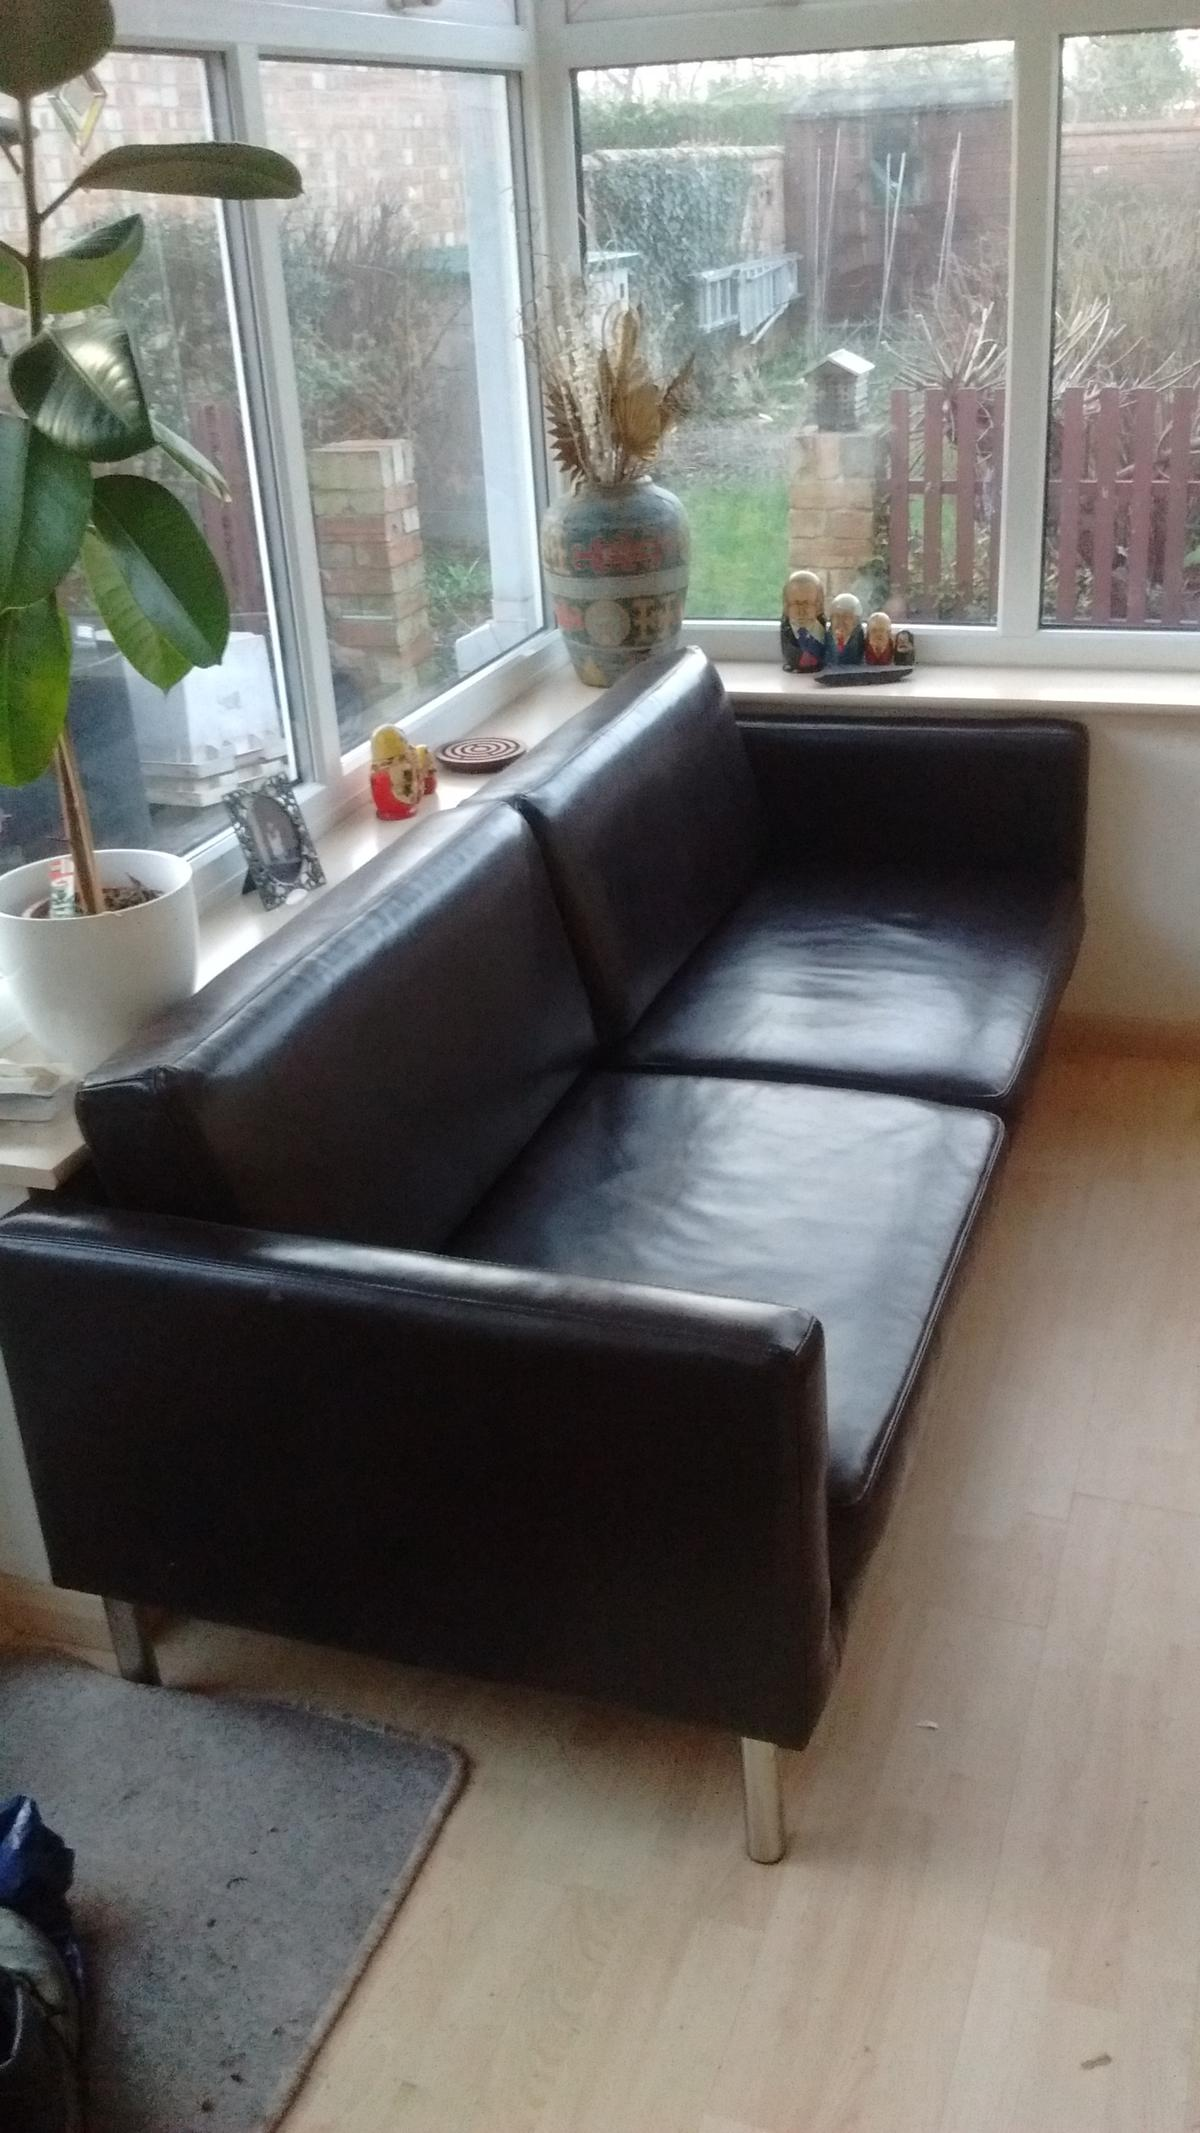 IKEA BROWN FAUX LEATHER SOFA in MK42 Kempston for £100.00 ...